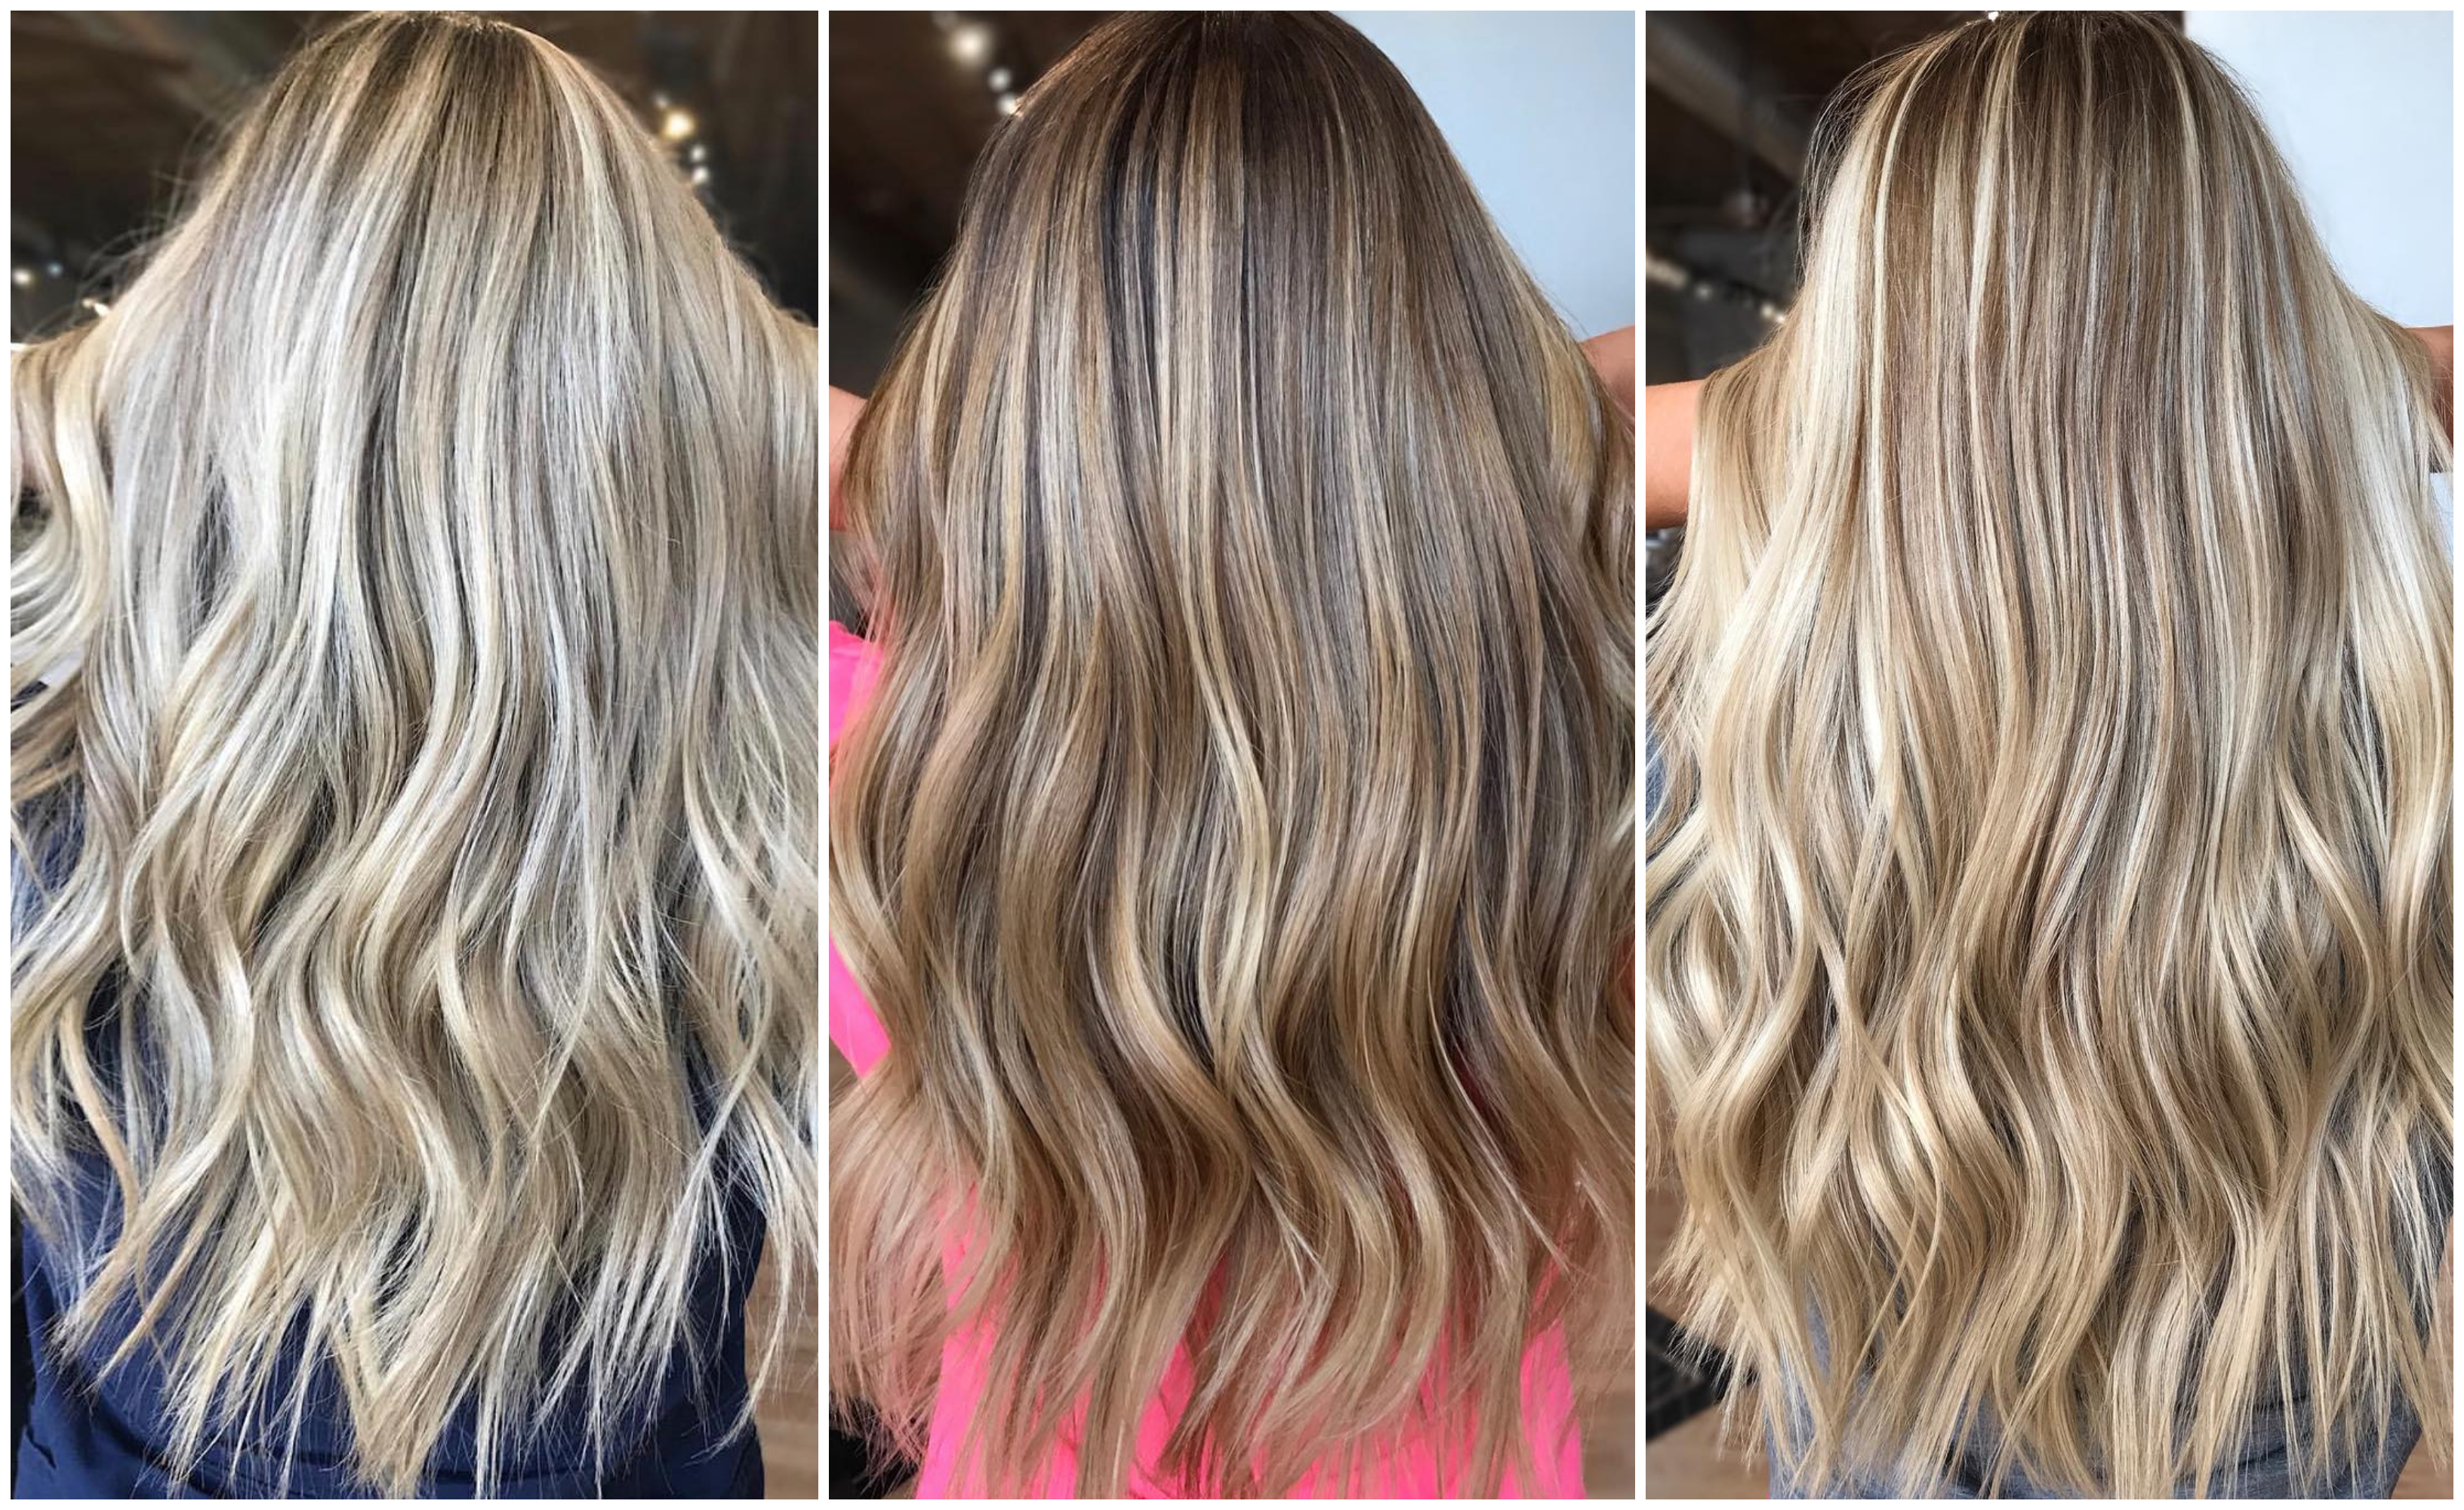 Foilyage Hair Color Technique